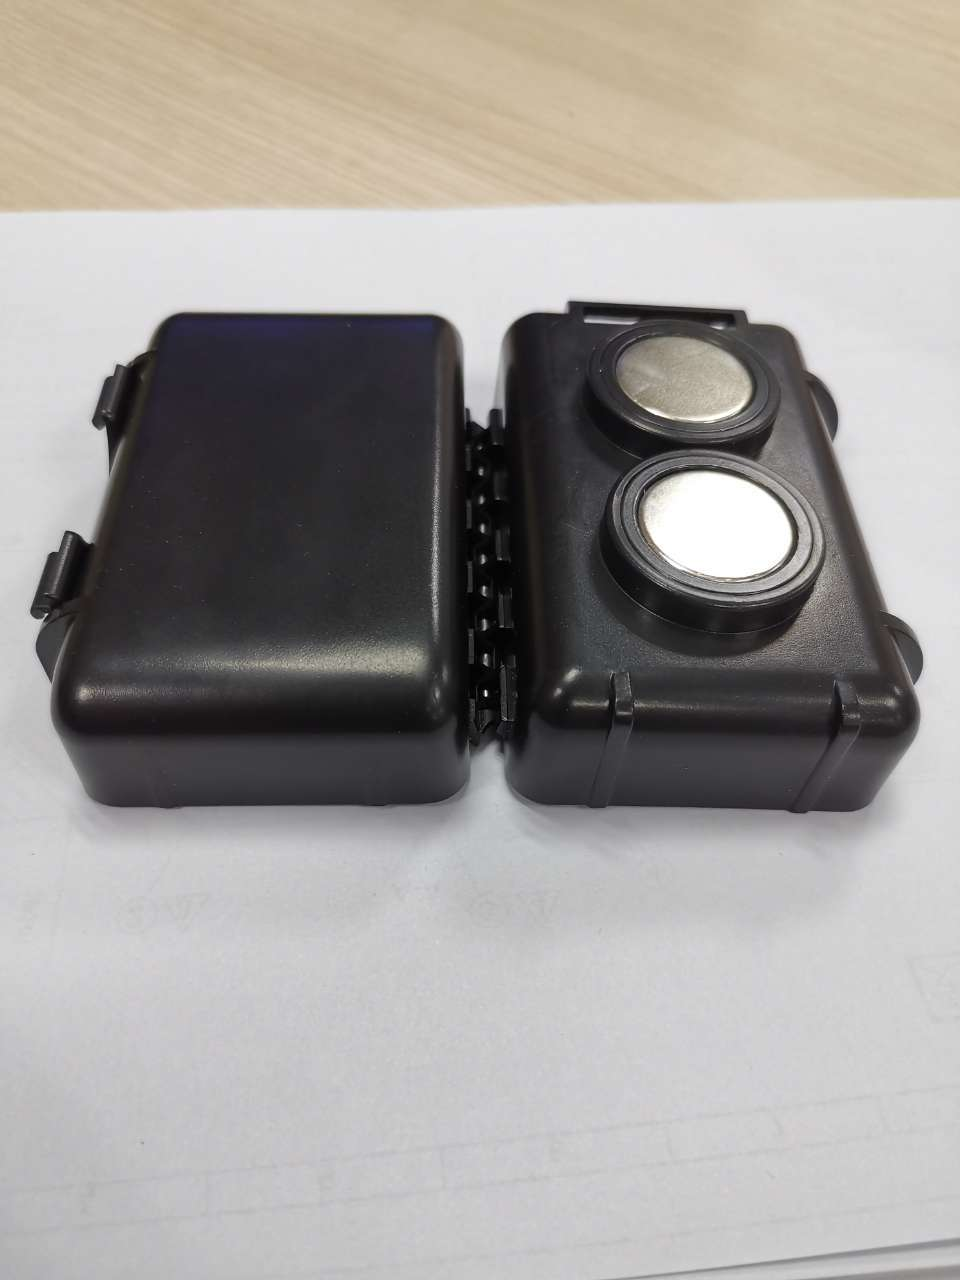 Super magnetic force waterproof Gps TrackerDevice sealedcase